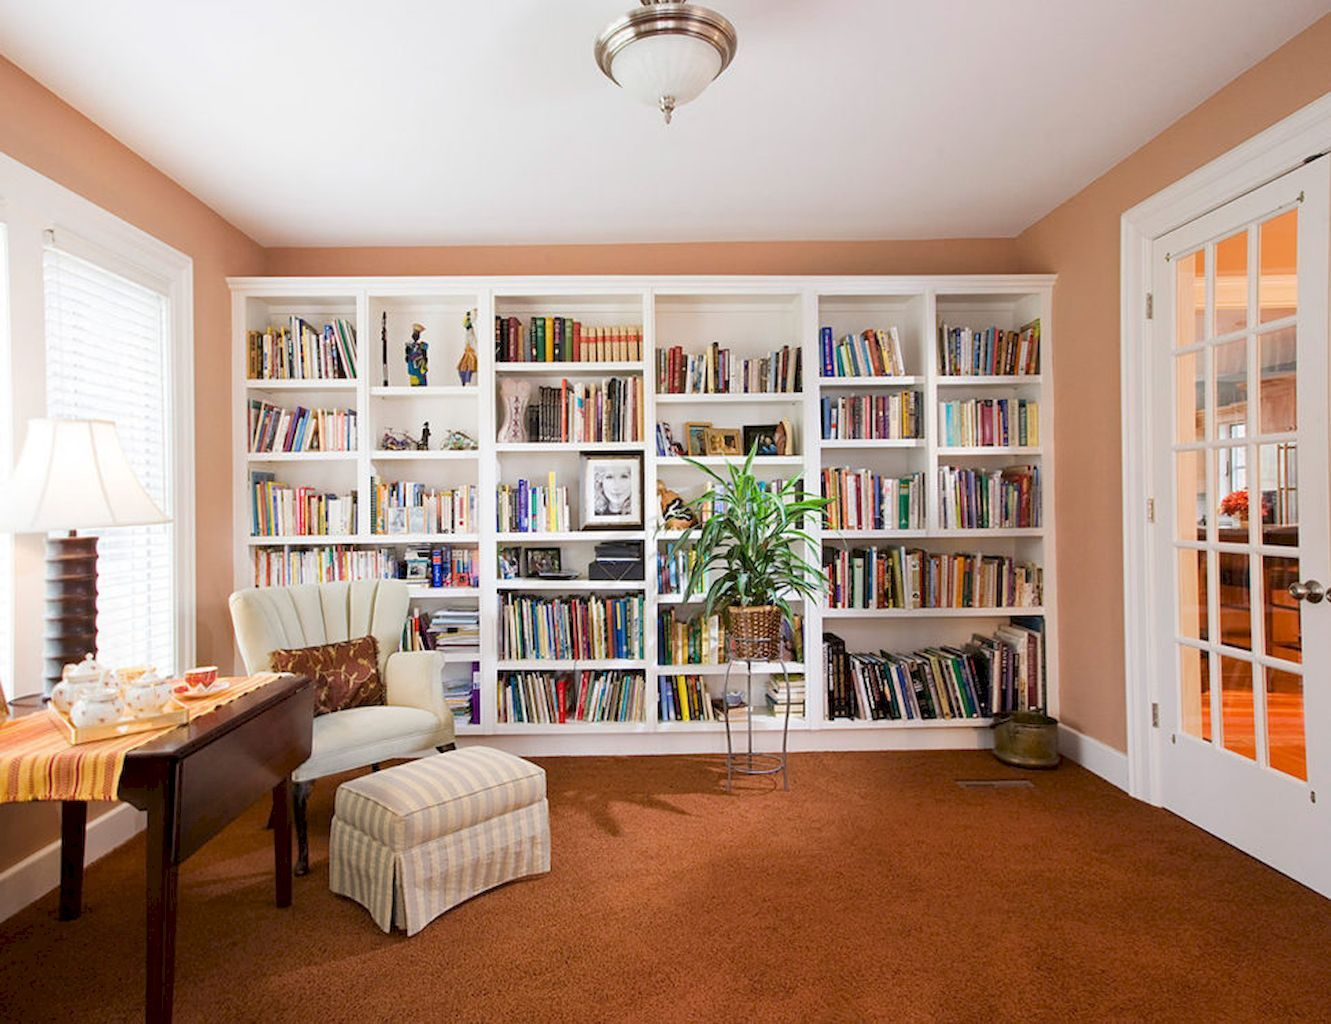 60 amazing library room design ideas with eclectic decor home rh pinterest com